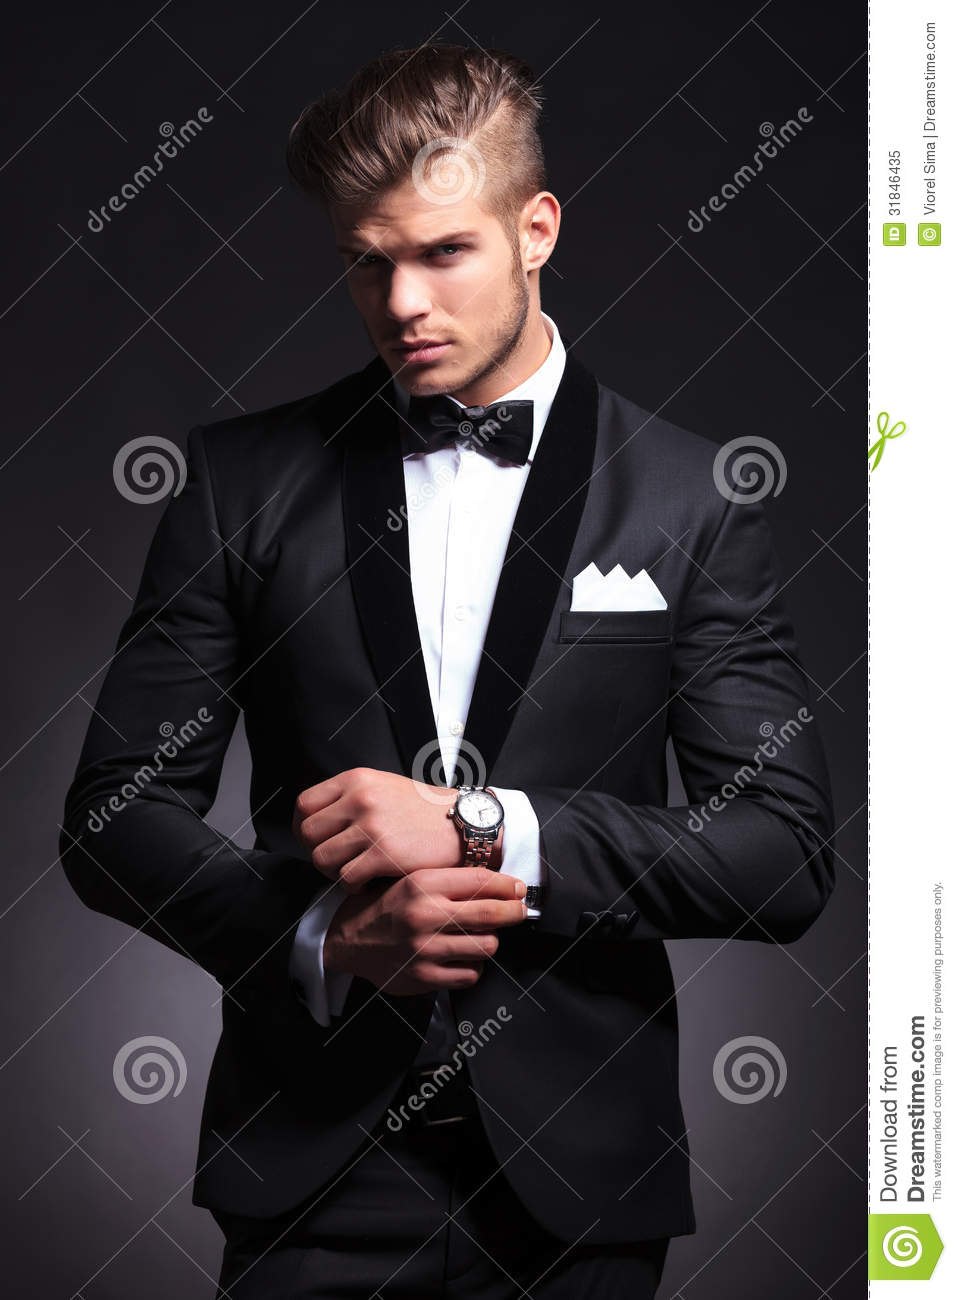 Business Man Fixing Cufflinks Royalty Free Stock Photo ... Young Businessman Fashion